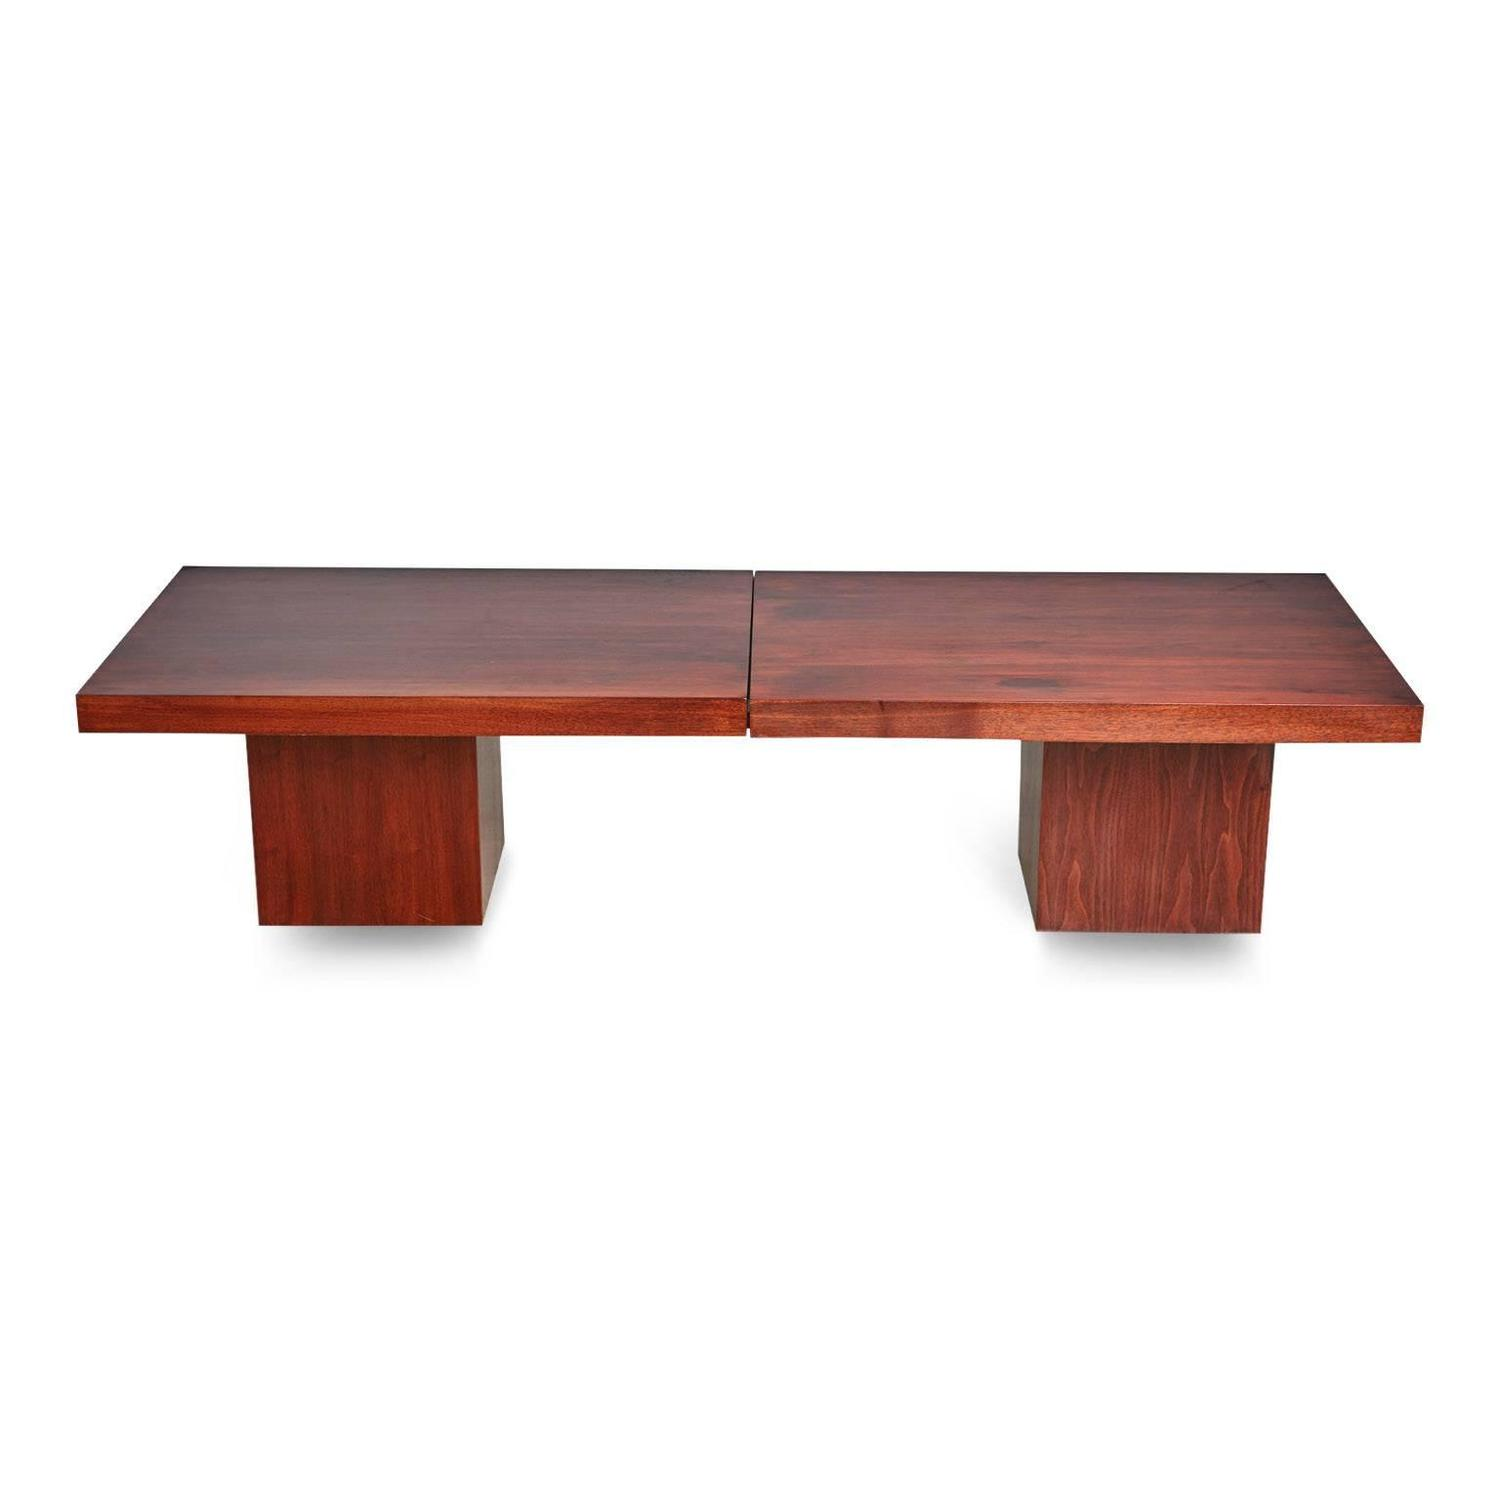 Extendable coffee table xxx 8829 1330967324 1 jpg extendable walnut coffee table by keal at - Telescopic coffee table ...